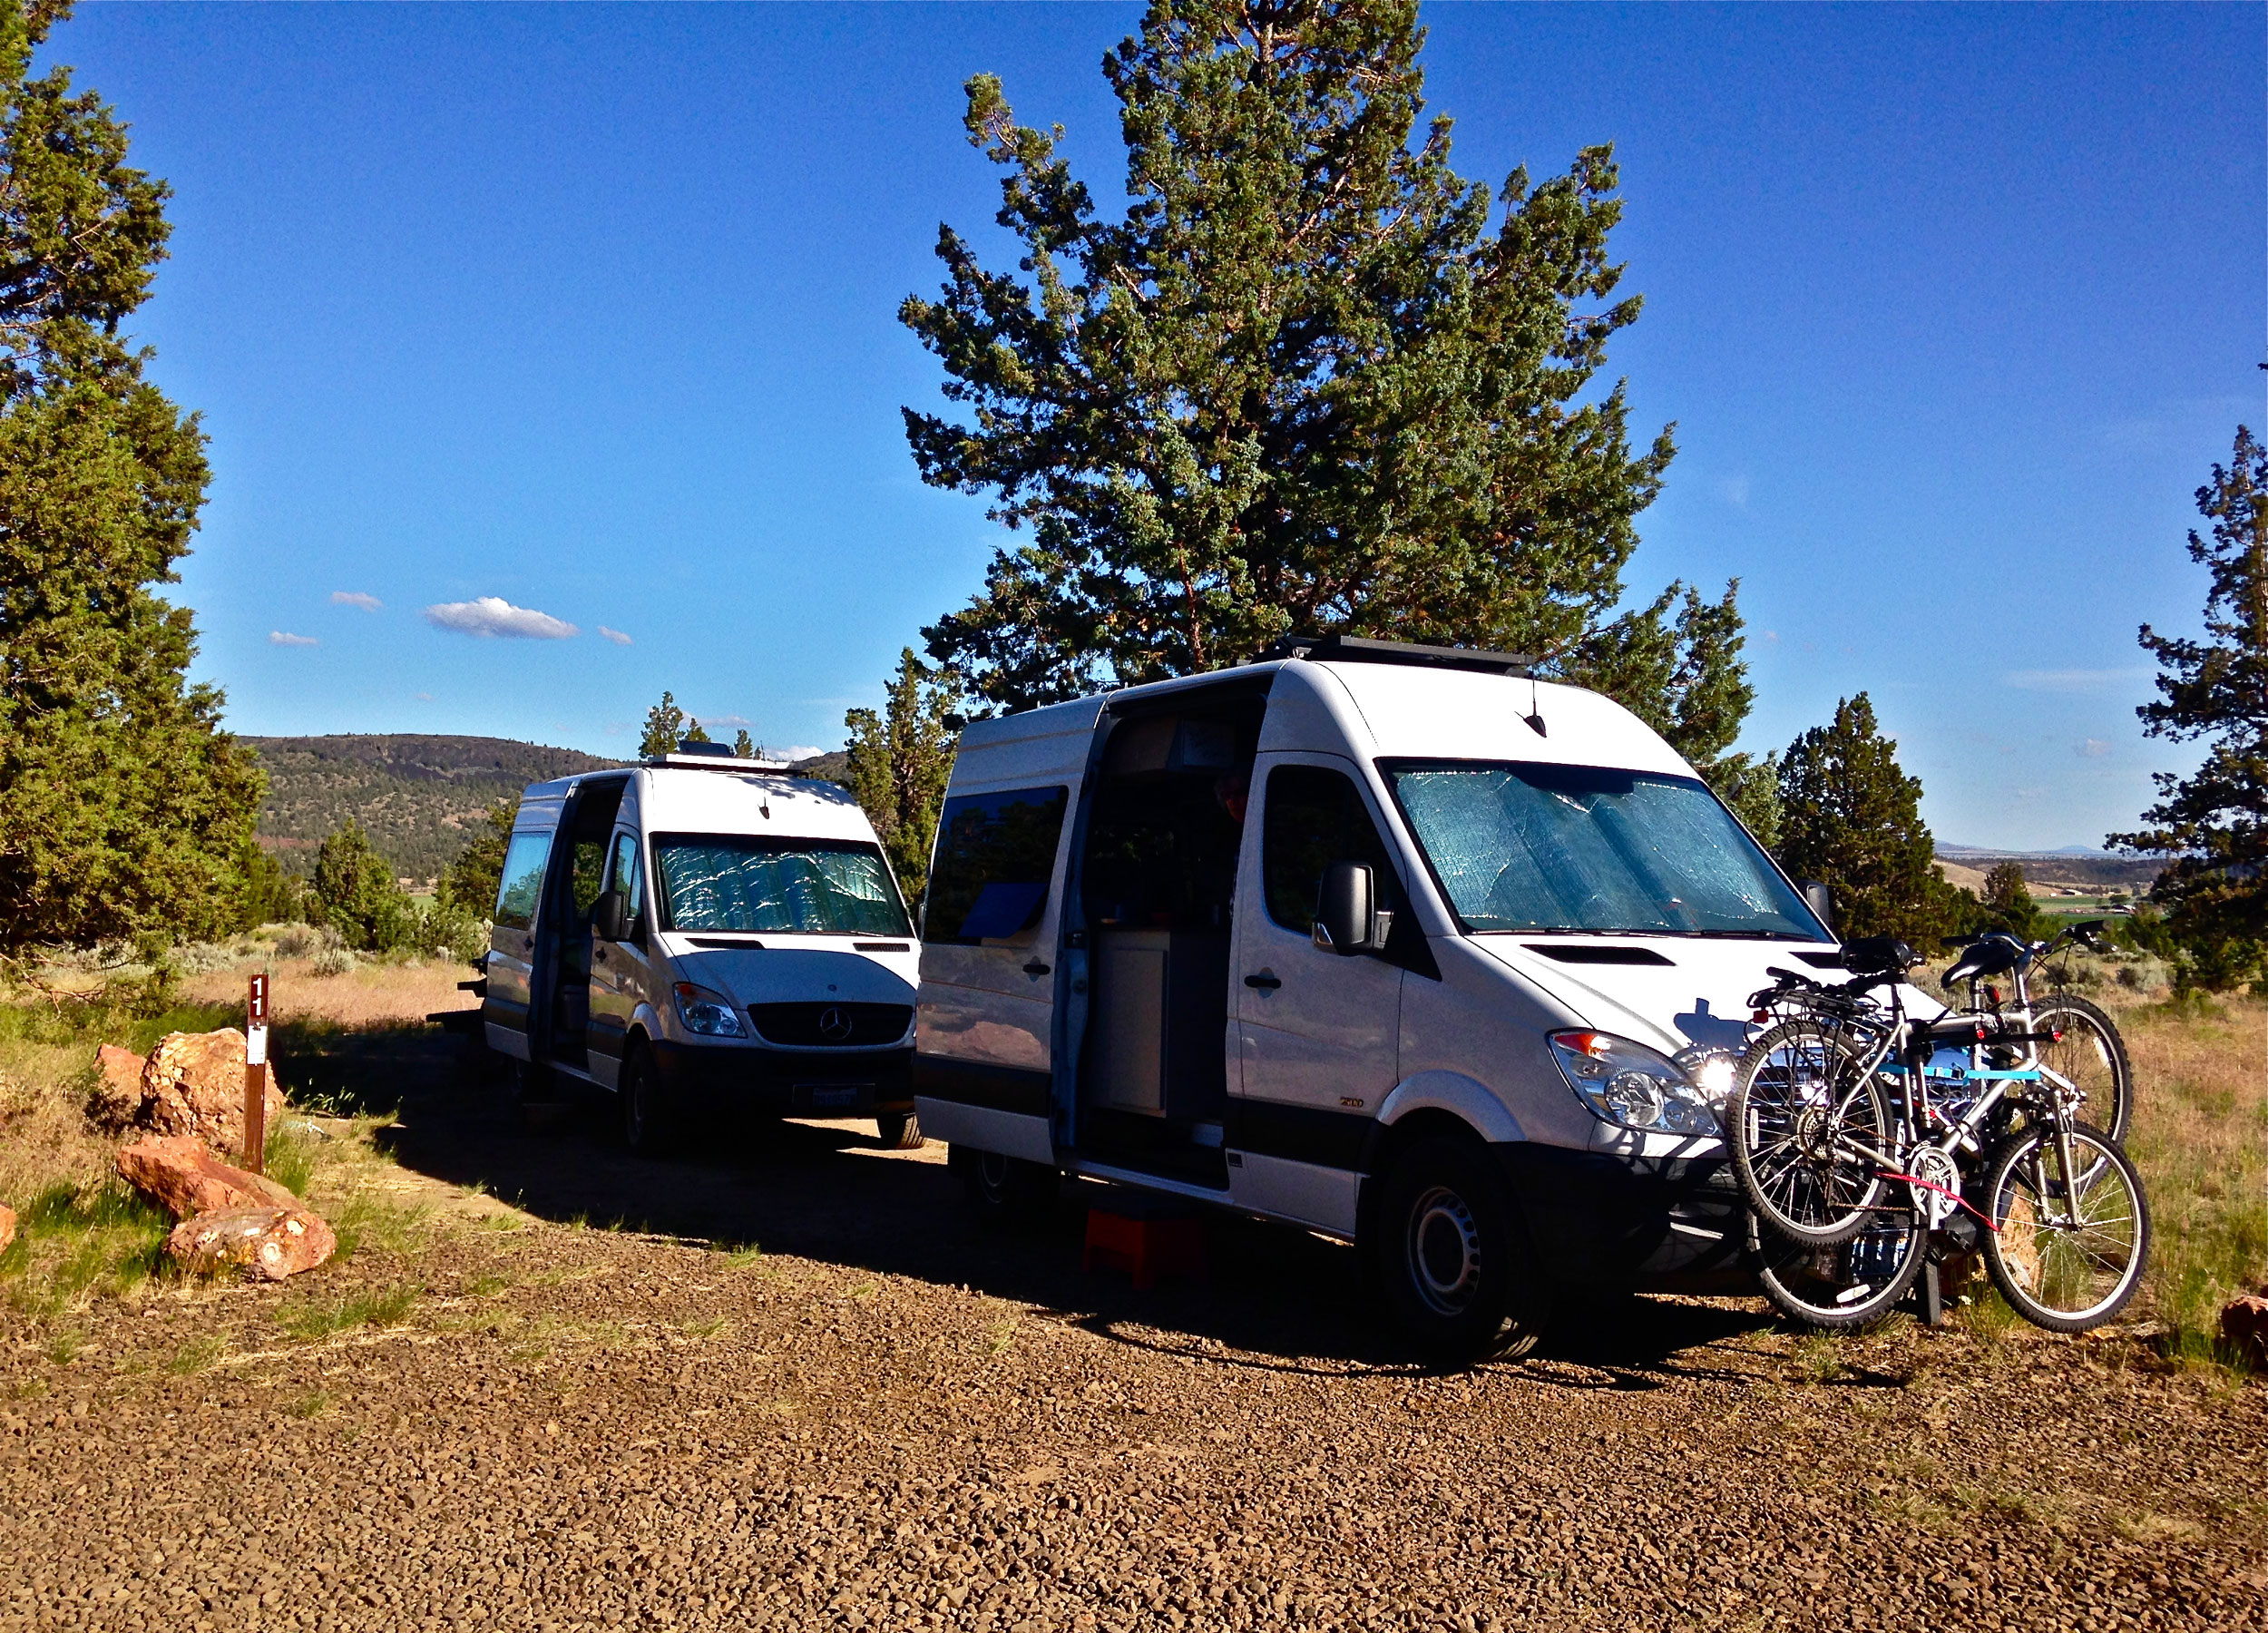 a double site that allows 2 vehicles at Skull Hollow Campground